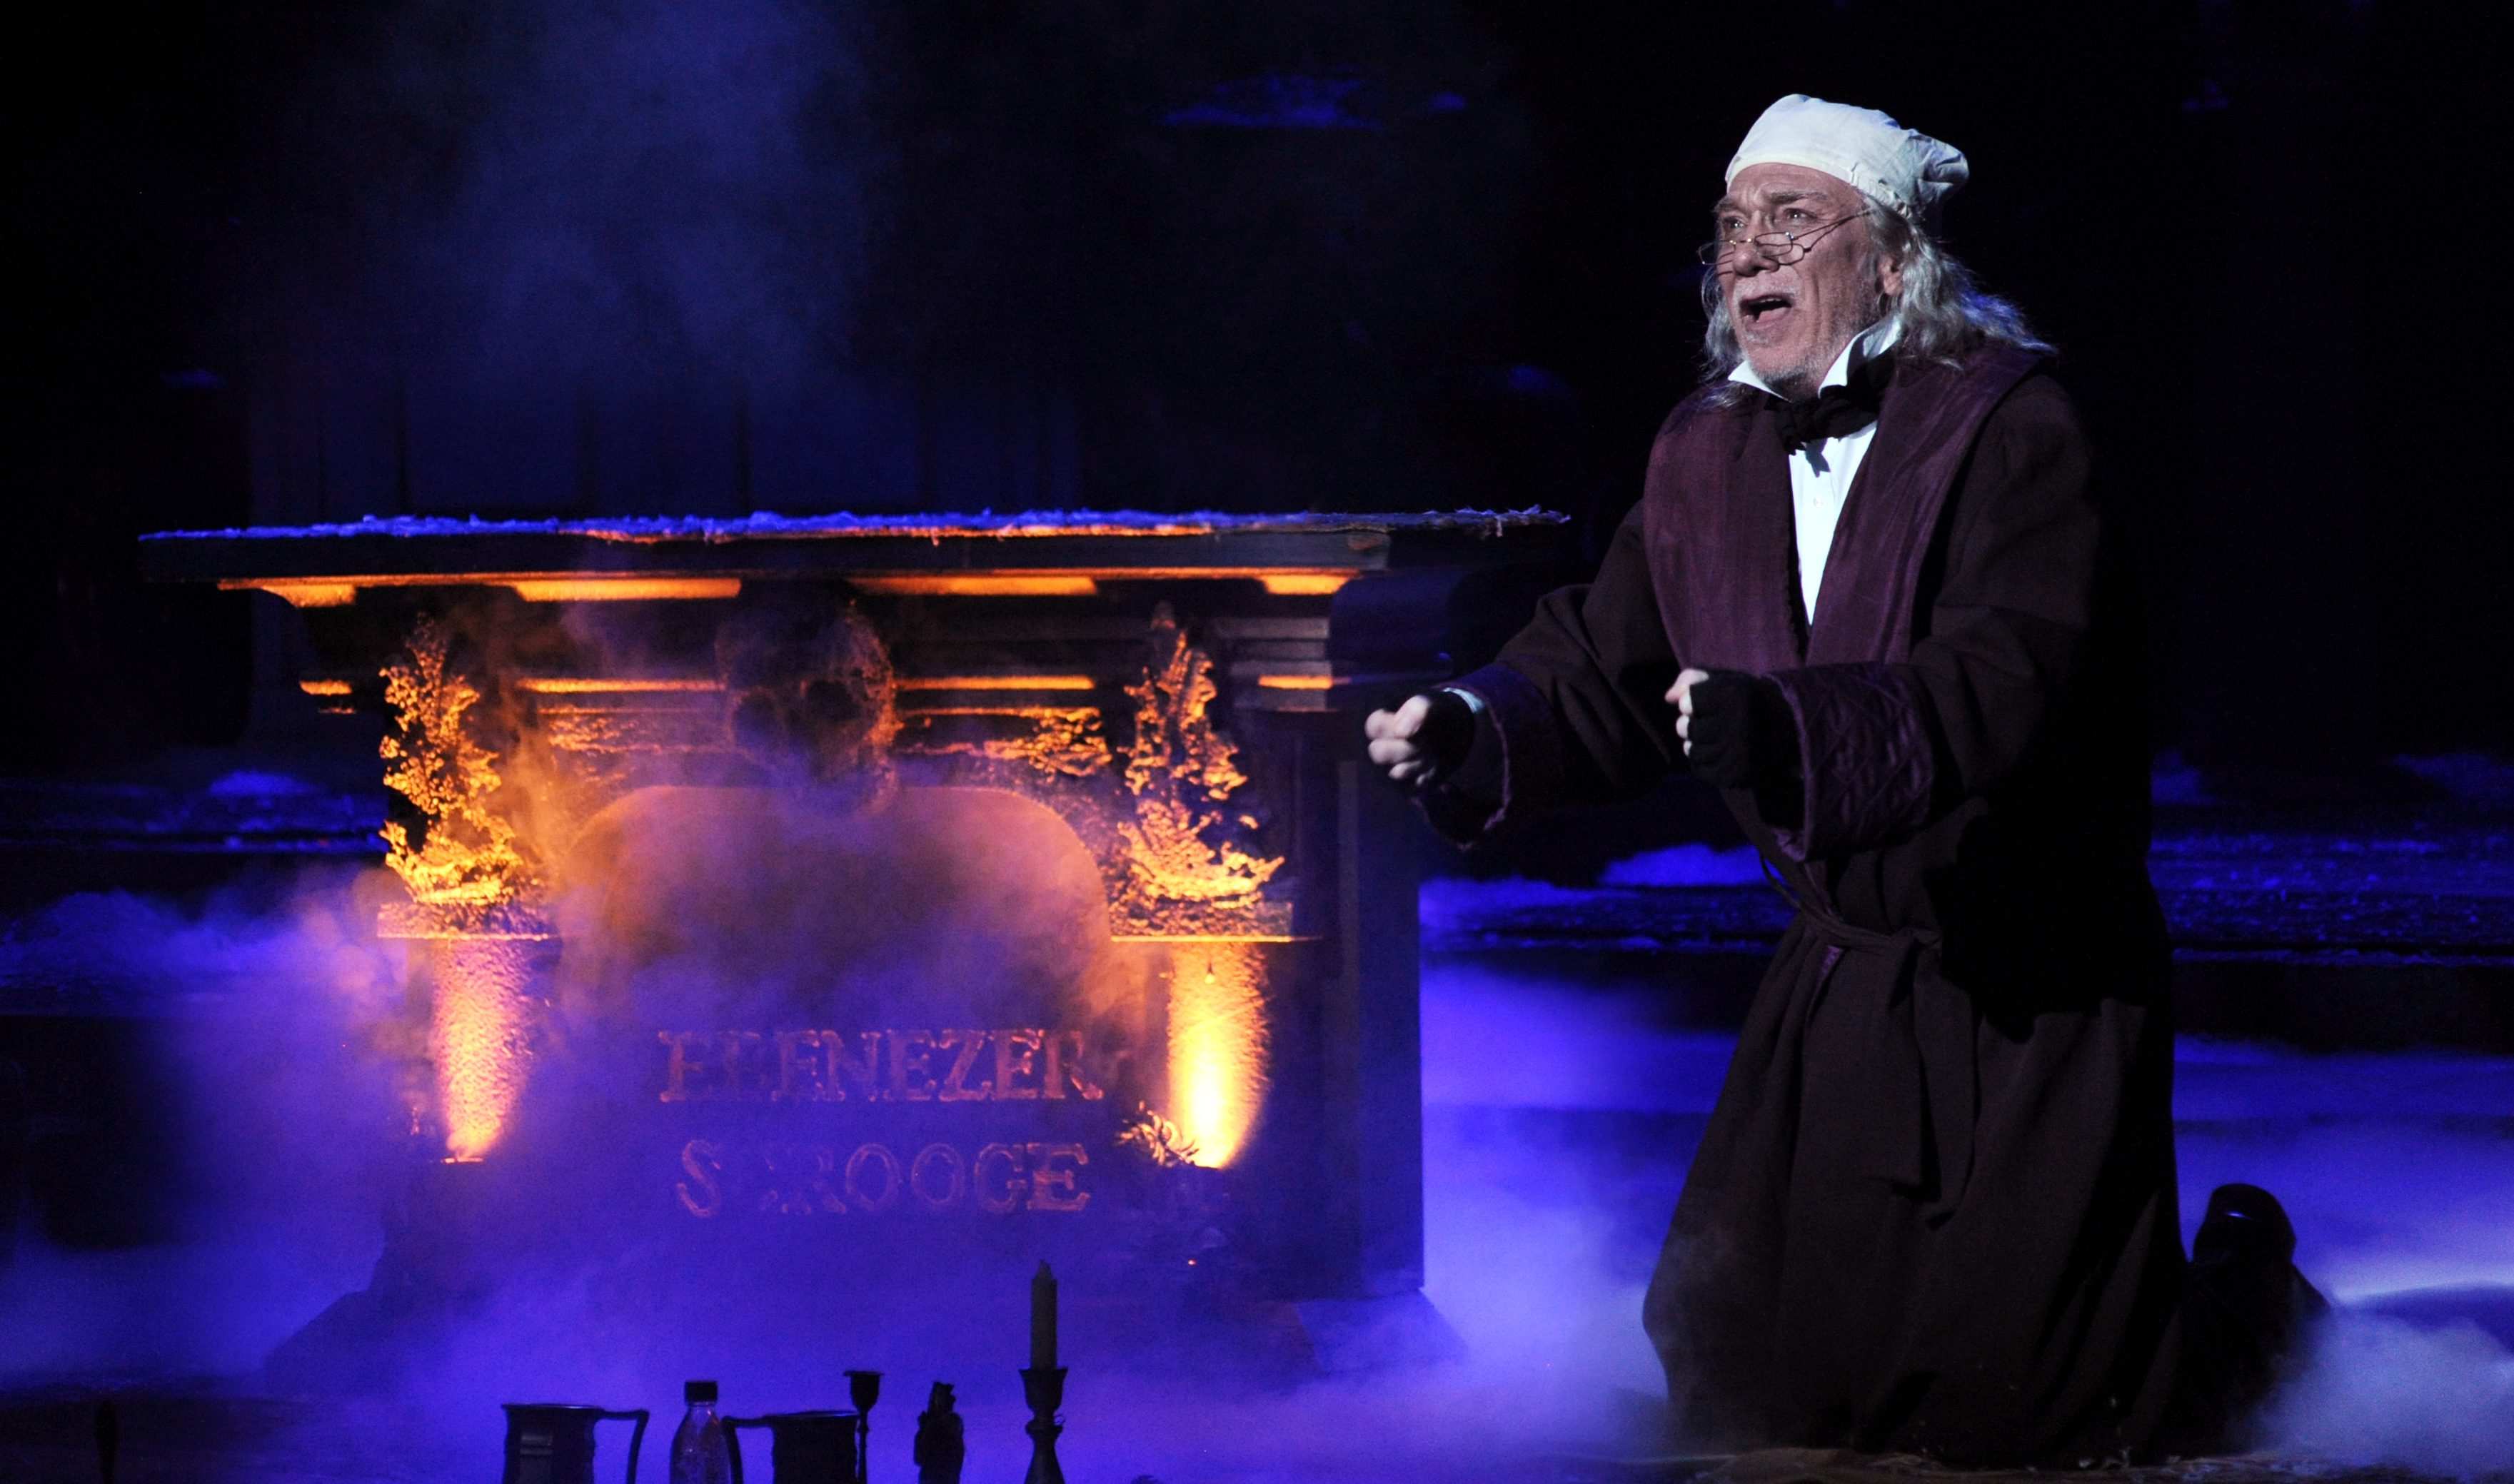 Scrooge (Patrick Page) sees the fires of Hell a-burnin' and begs for a re-do. If the feeling hits home, that's one reason the story has lived on; Pittsburgh CLO's adaptation adds new twists to the Dickens original.